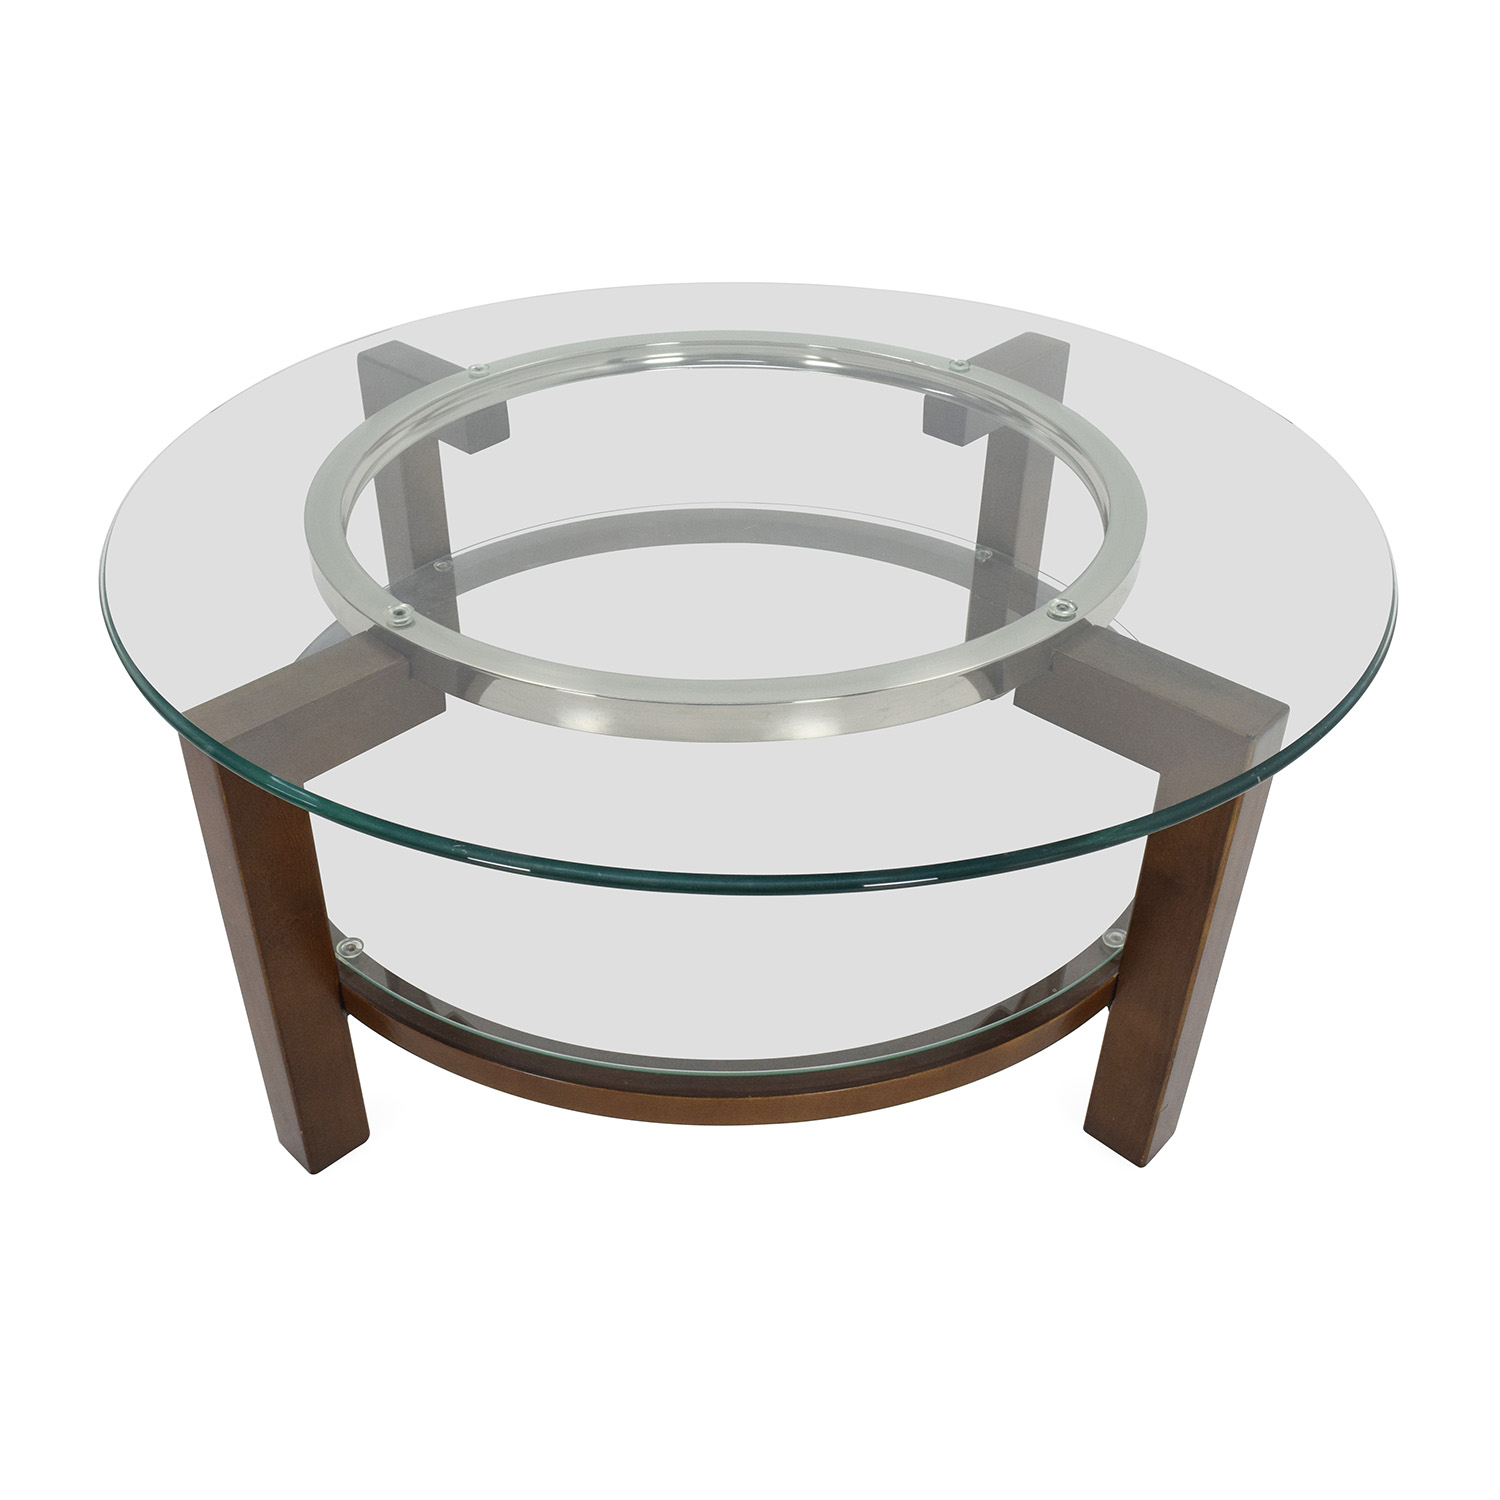 80 Off Cb2 Cb2 Glass Top Coffee Table Tables: glass coffee table tops